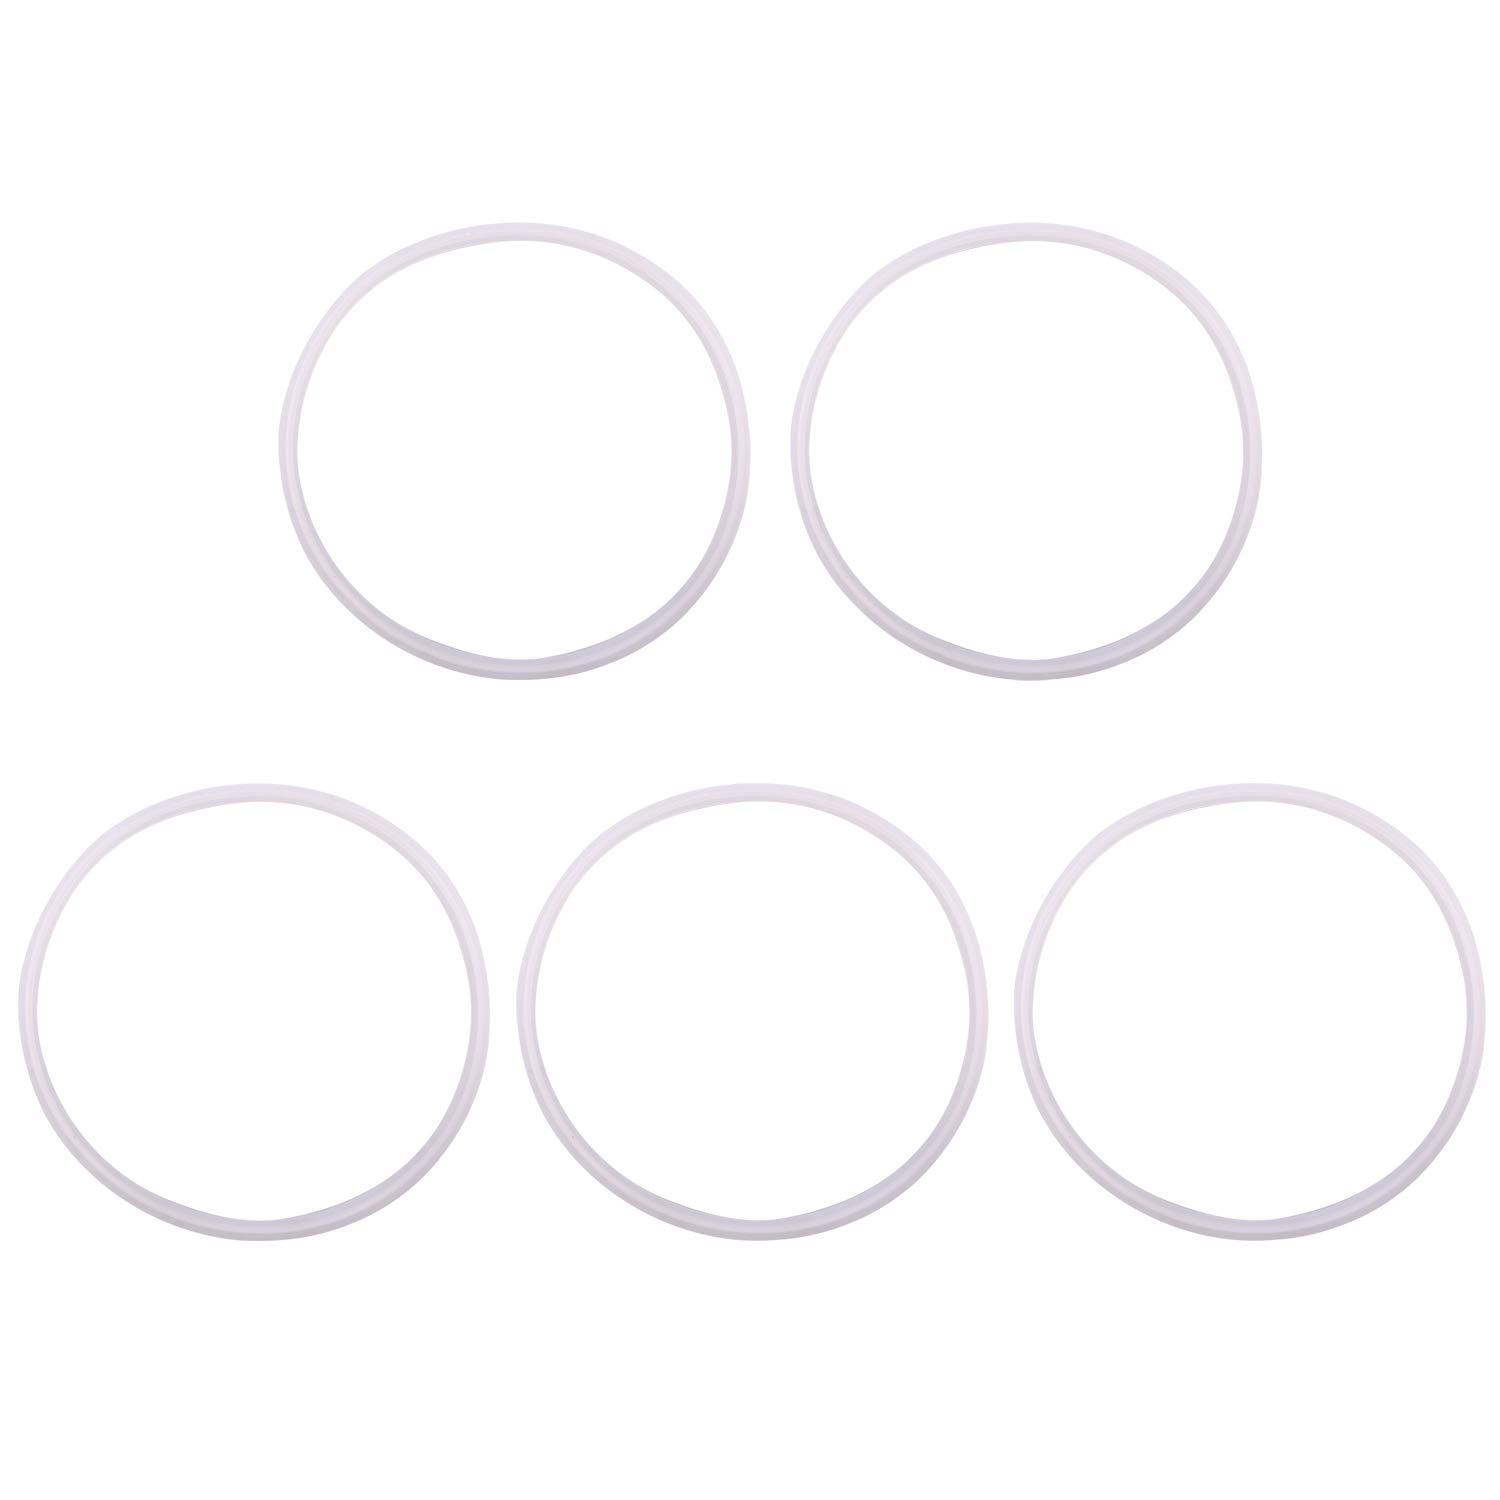 DERNORD Silicone Gasket Tri-clover (Tri-clamp) O-Ring - 8 Inch (Pack of 5)